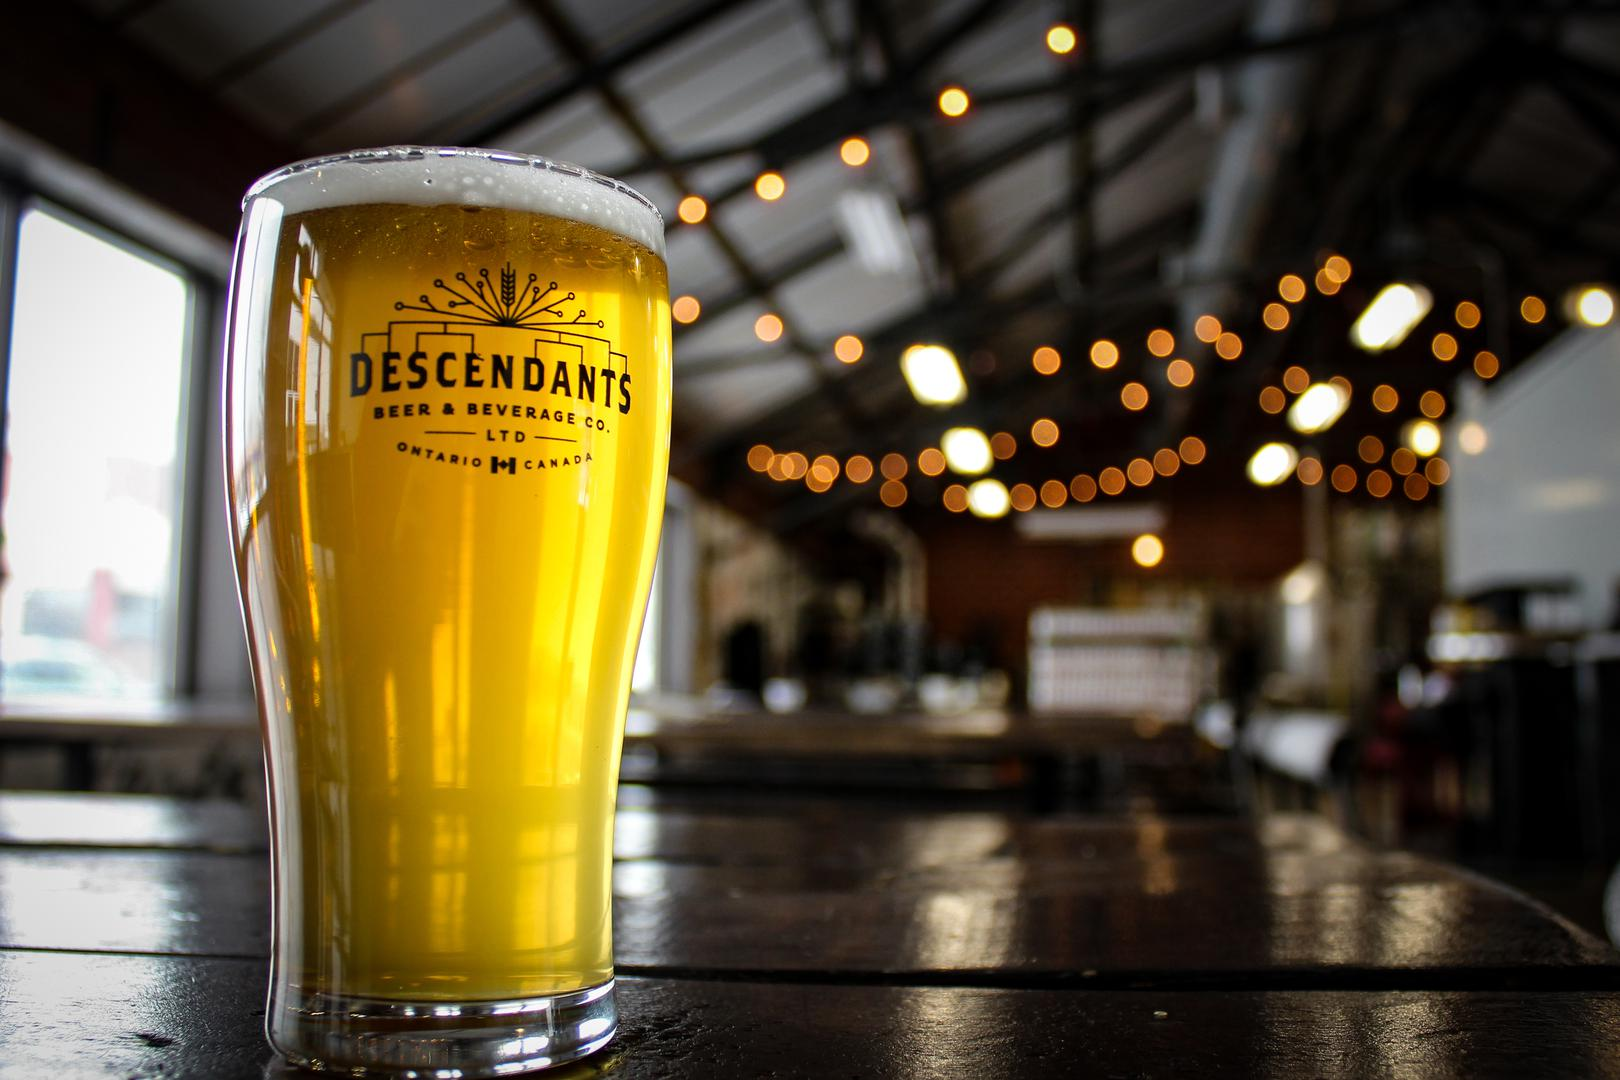 space at Descendants Beer and Beverage Co. Ltd.